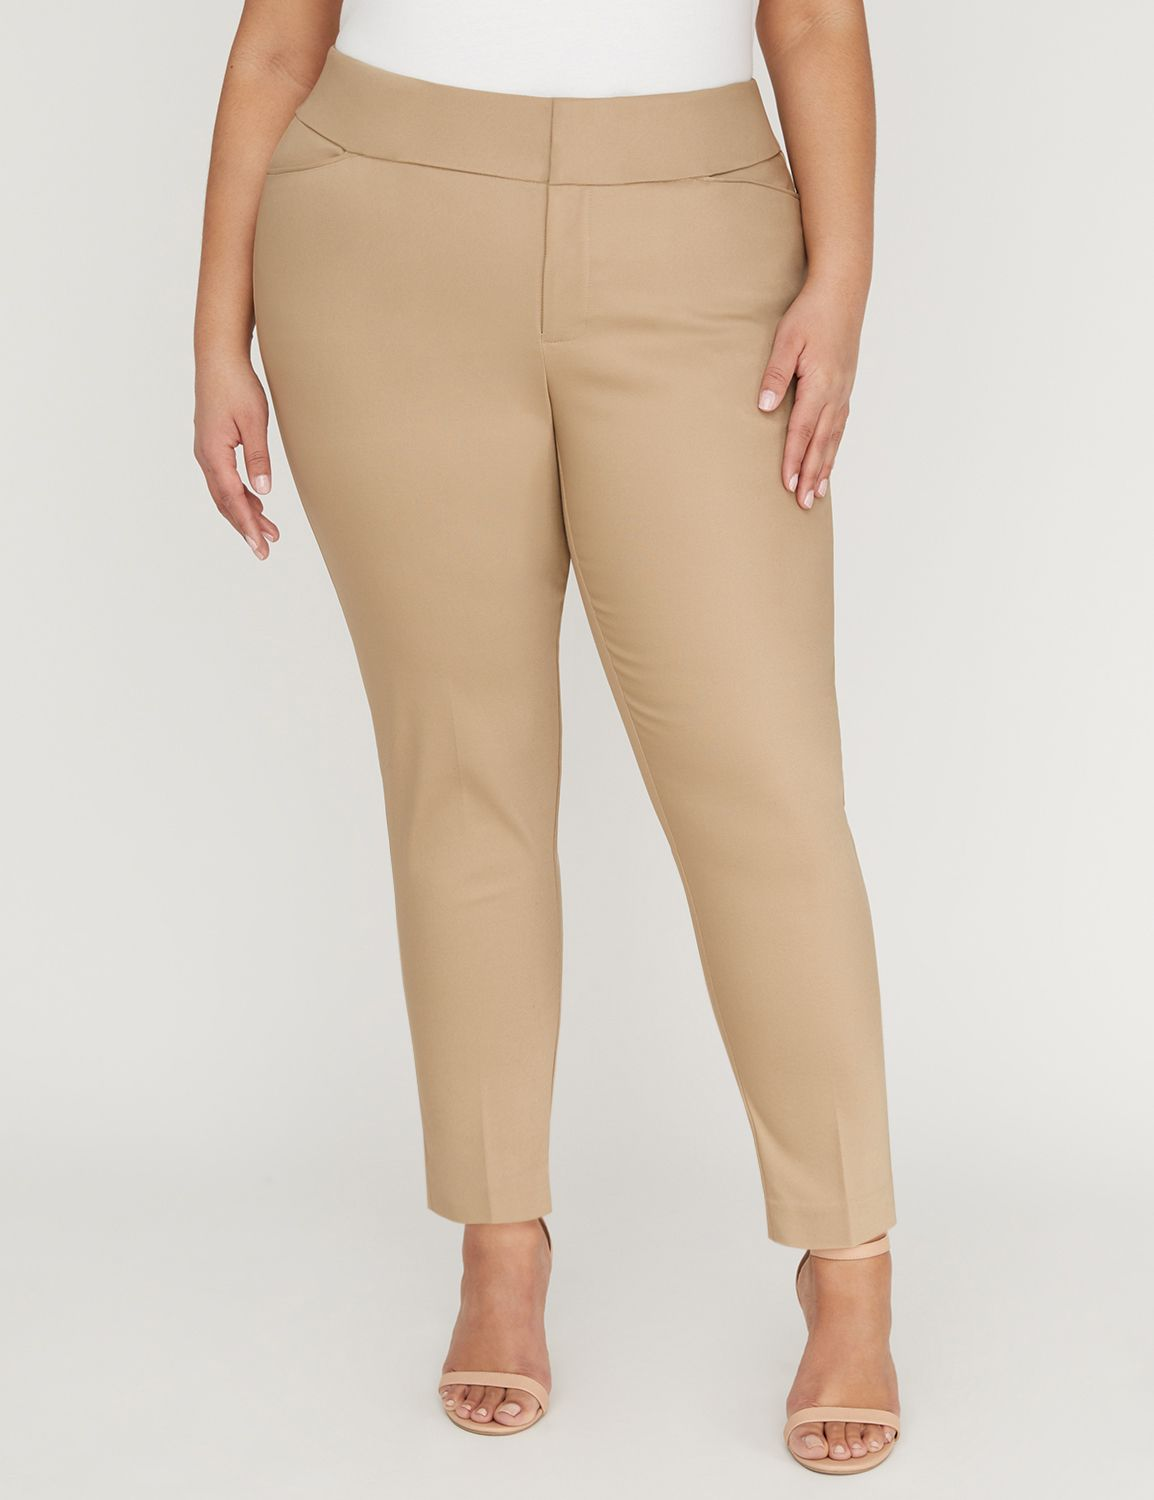 Updated Modern Stretch Ankle Pant 1087775 MODERN STRETCH WIDE WAISTBA MP-300097587